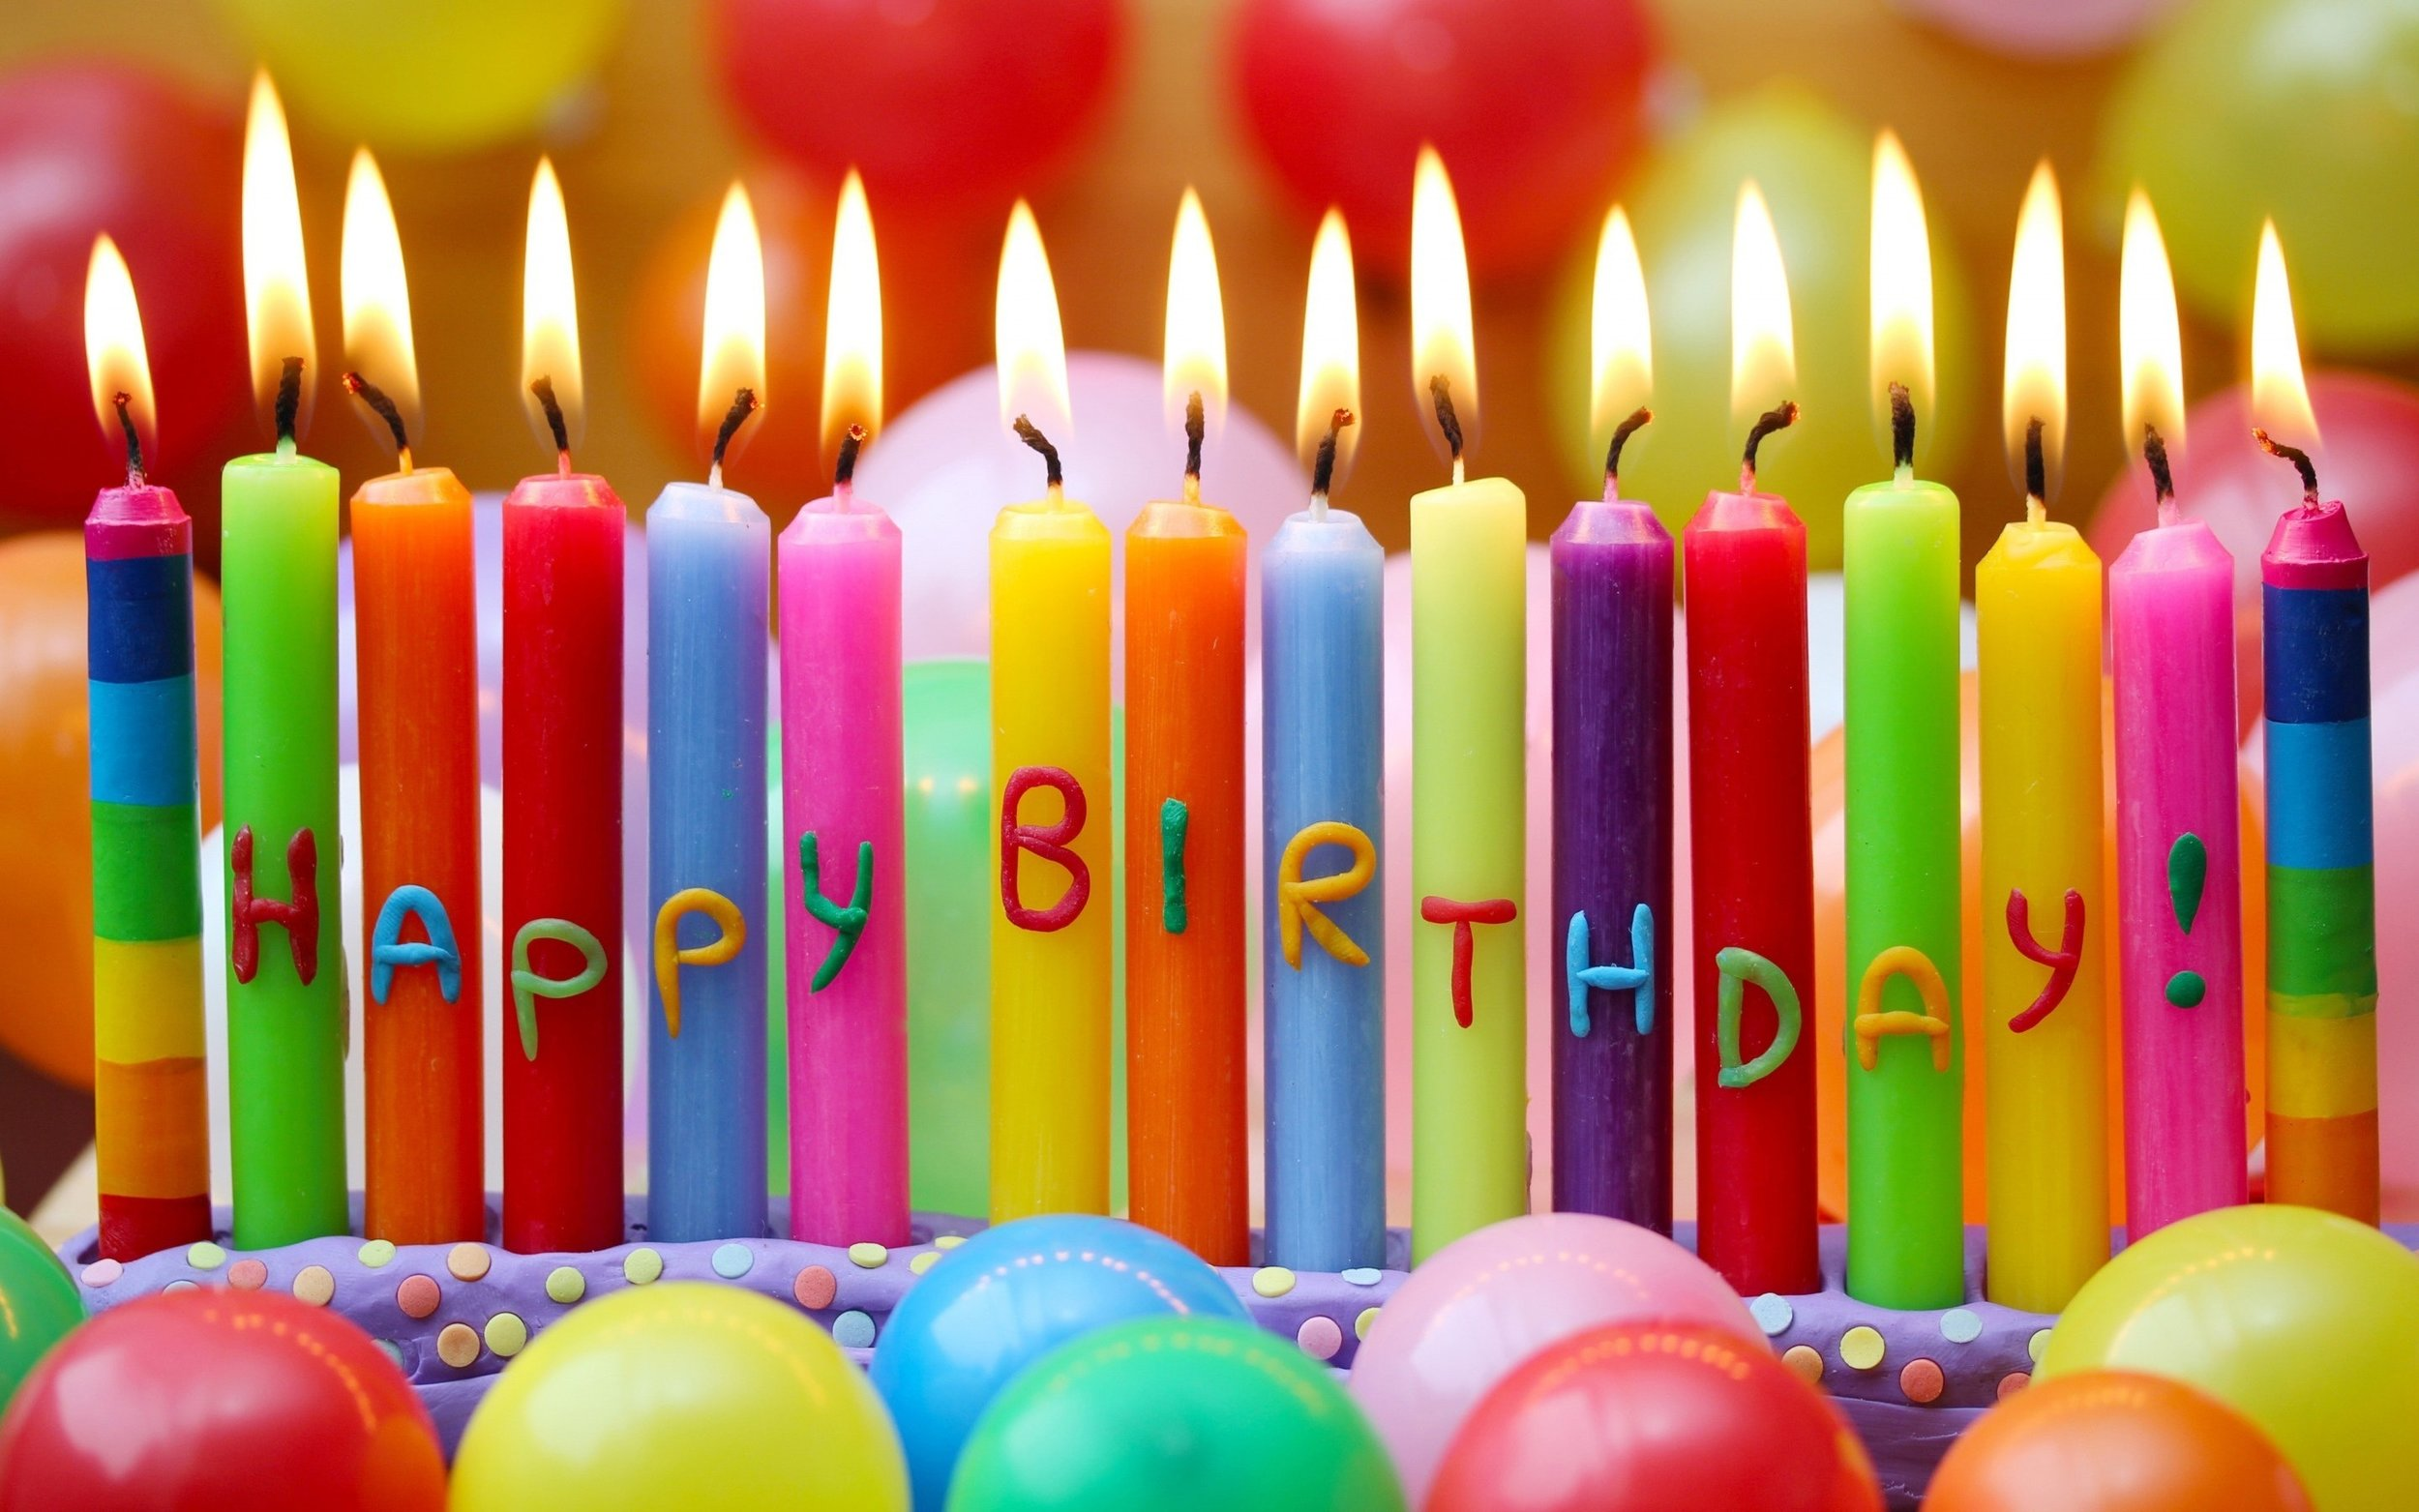 awesome-birthday-hd-images-happy-birthday-393297.jpg